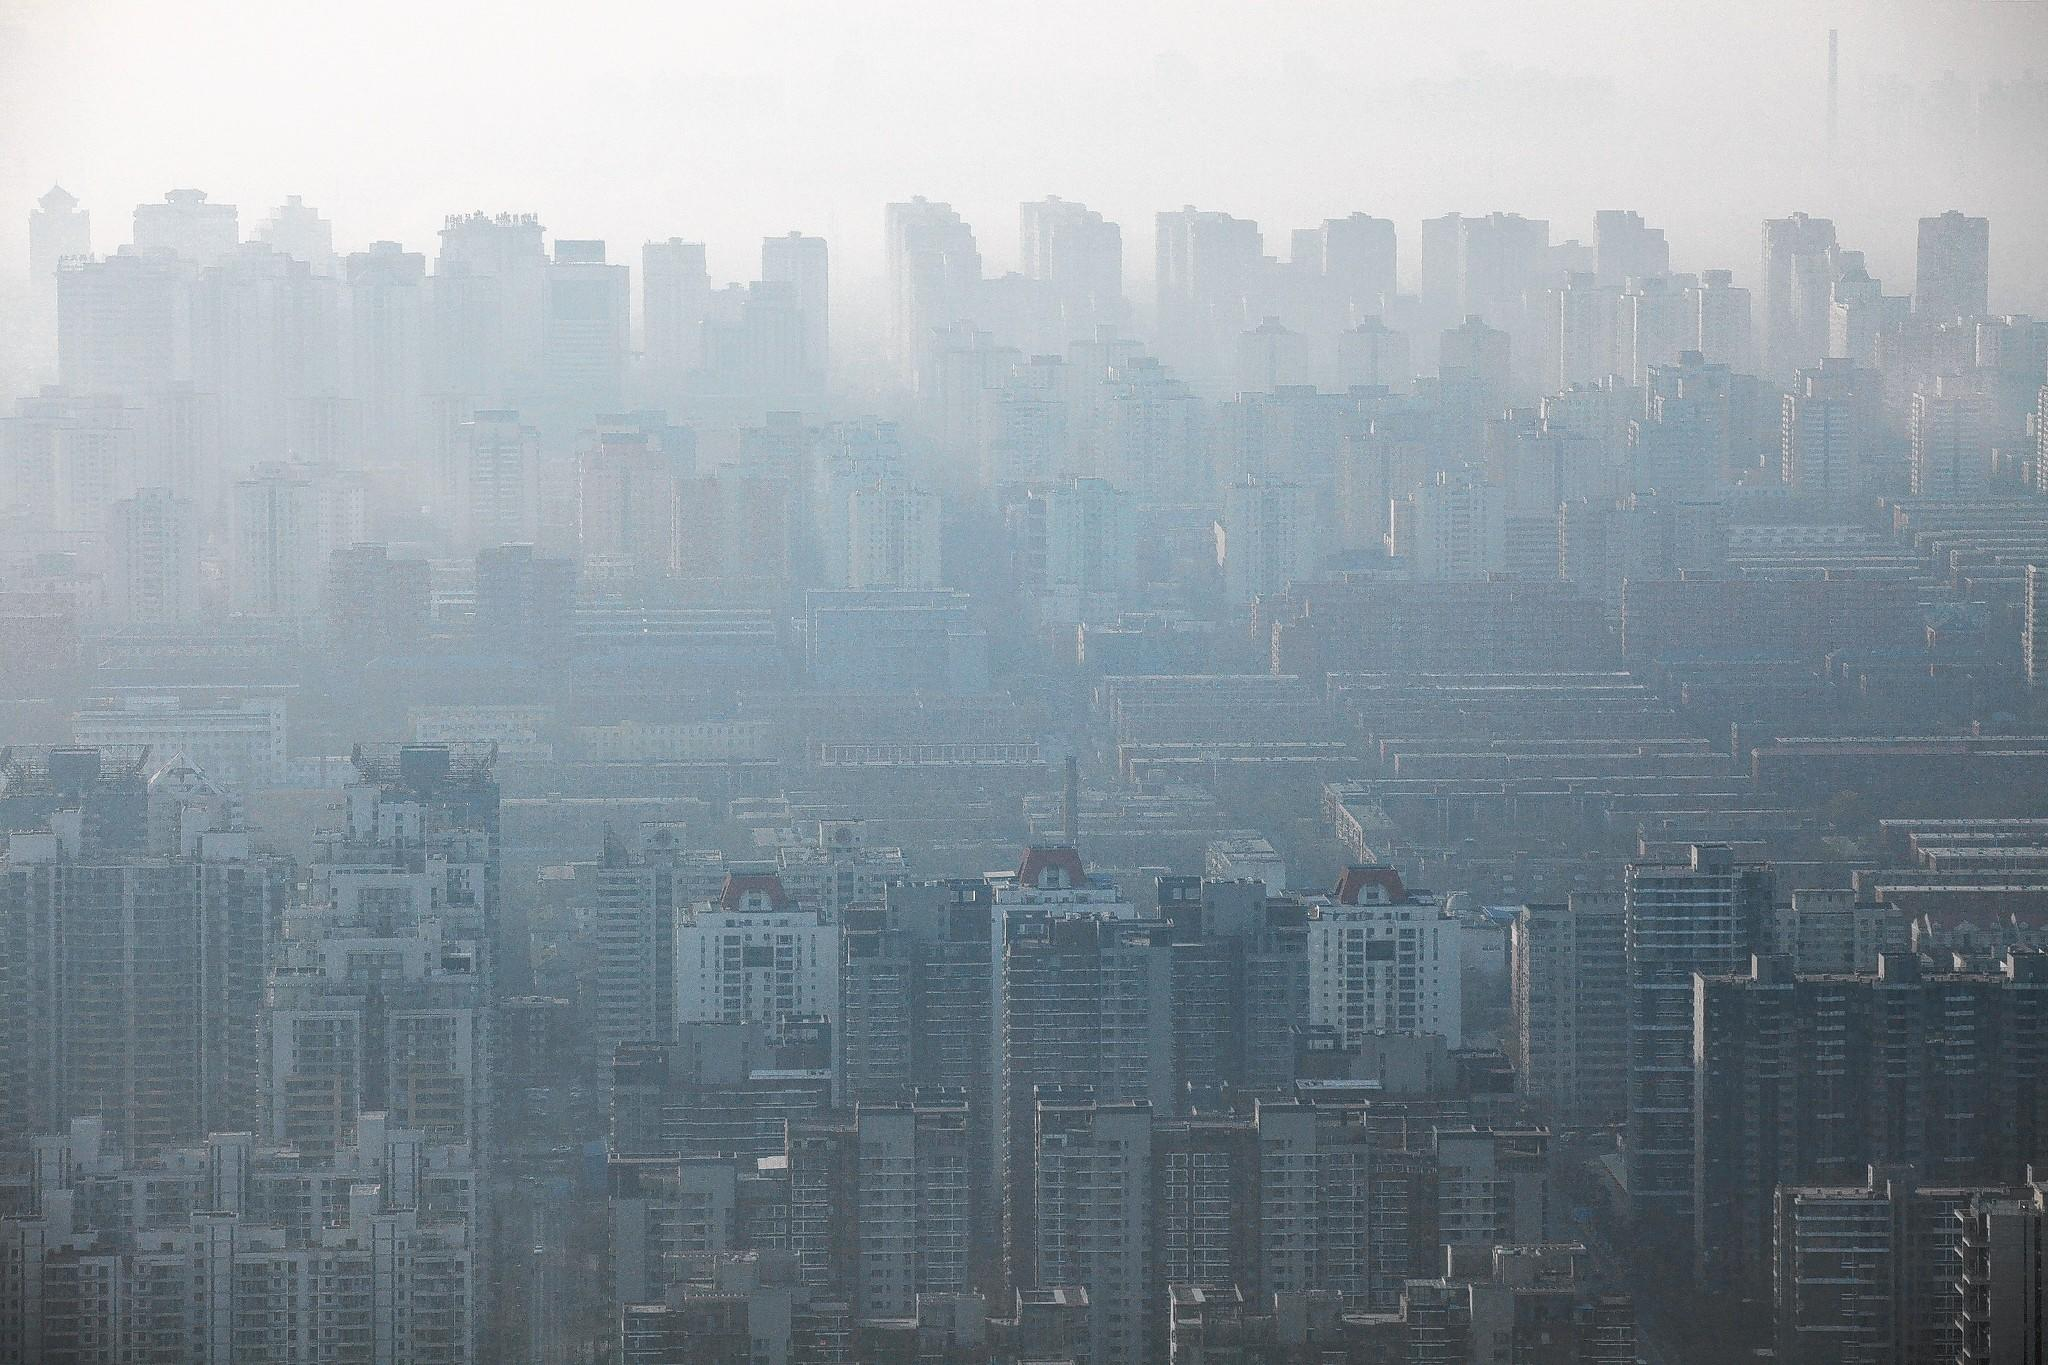 A view of the Beijing skyline in December. The Chinese and their architects are putting up skyscrapers, Chicago-style. But they're not building cities, Chicago-style. Traffic and pollution have gotten out of control.